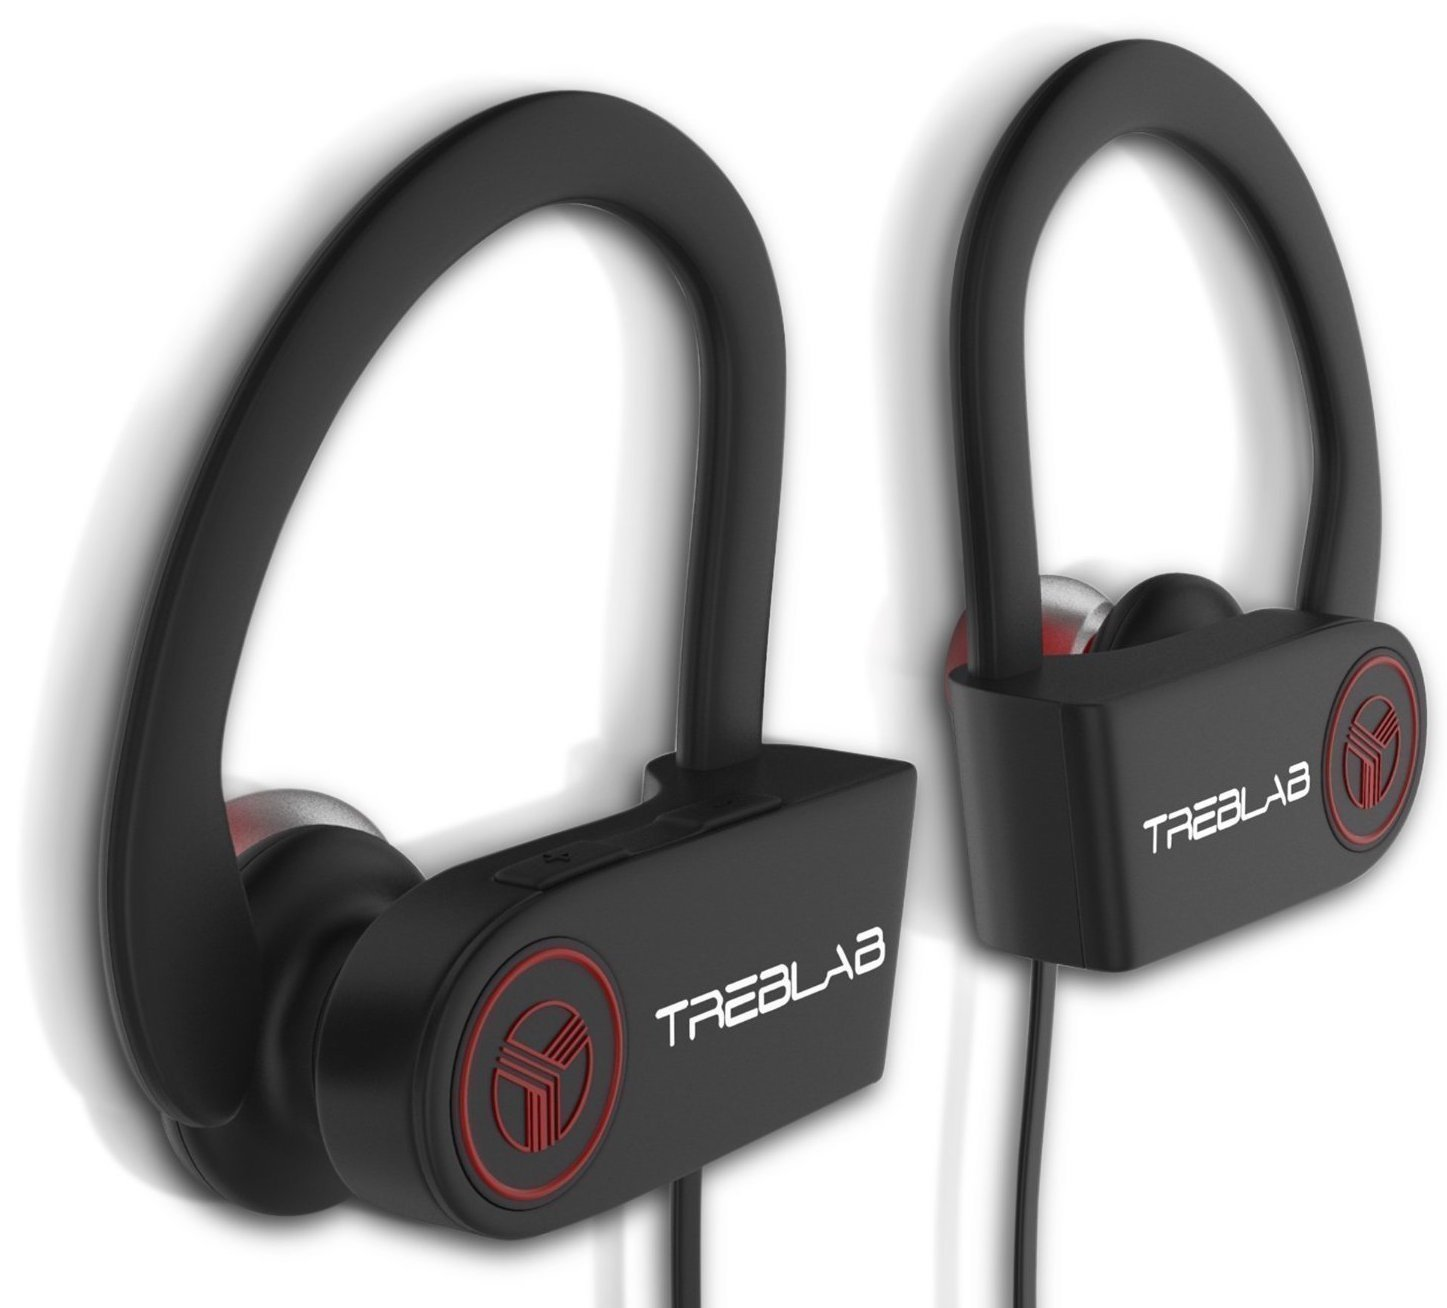 Treblab Xr100 Bluetooth Sports Headphones Best Wireless Earbuds For Running Or Workout Noise Cancelling